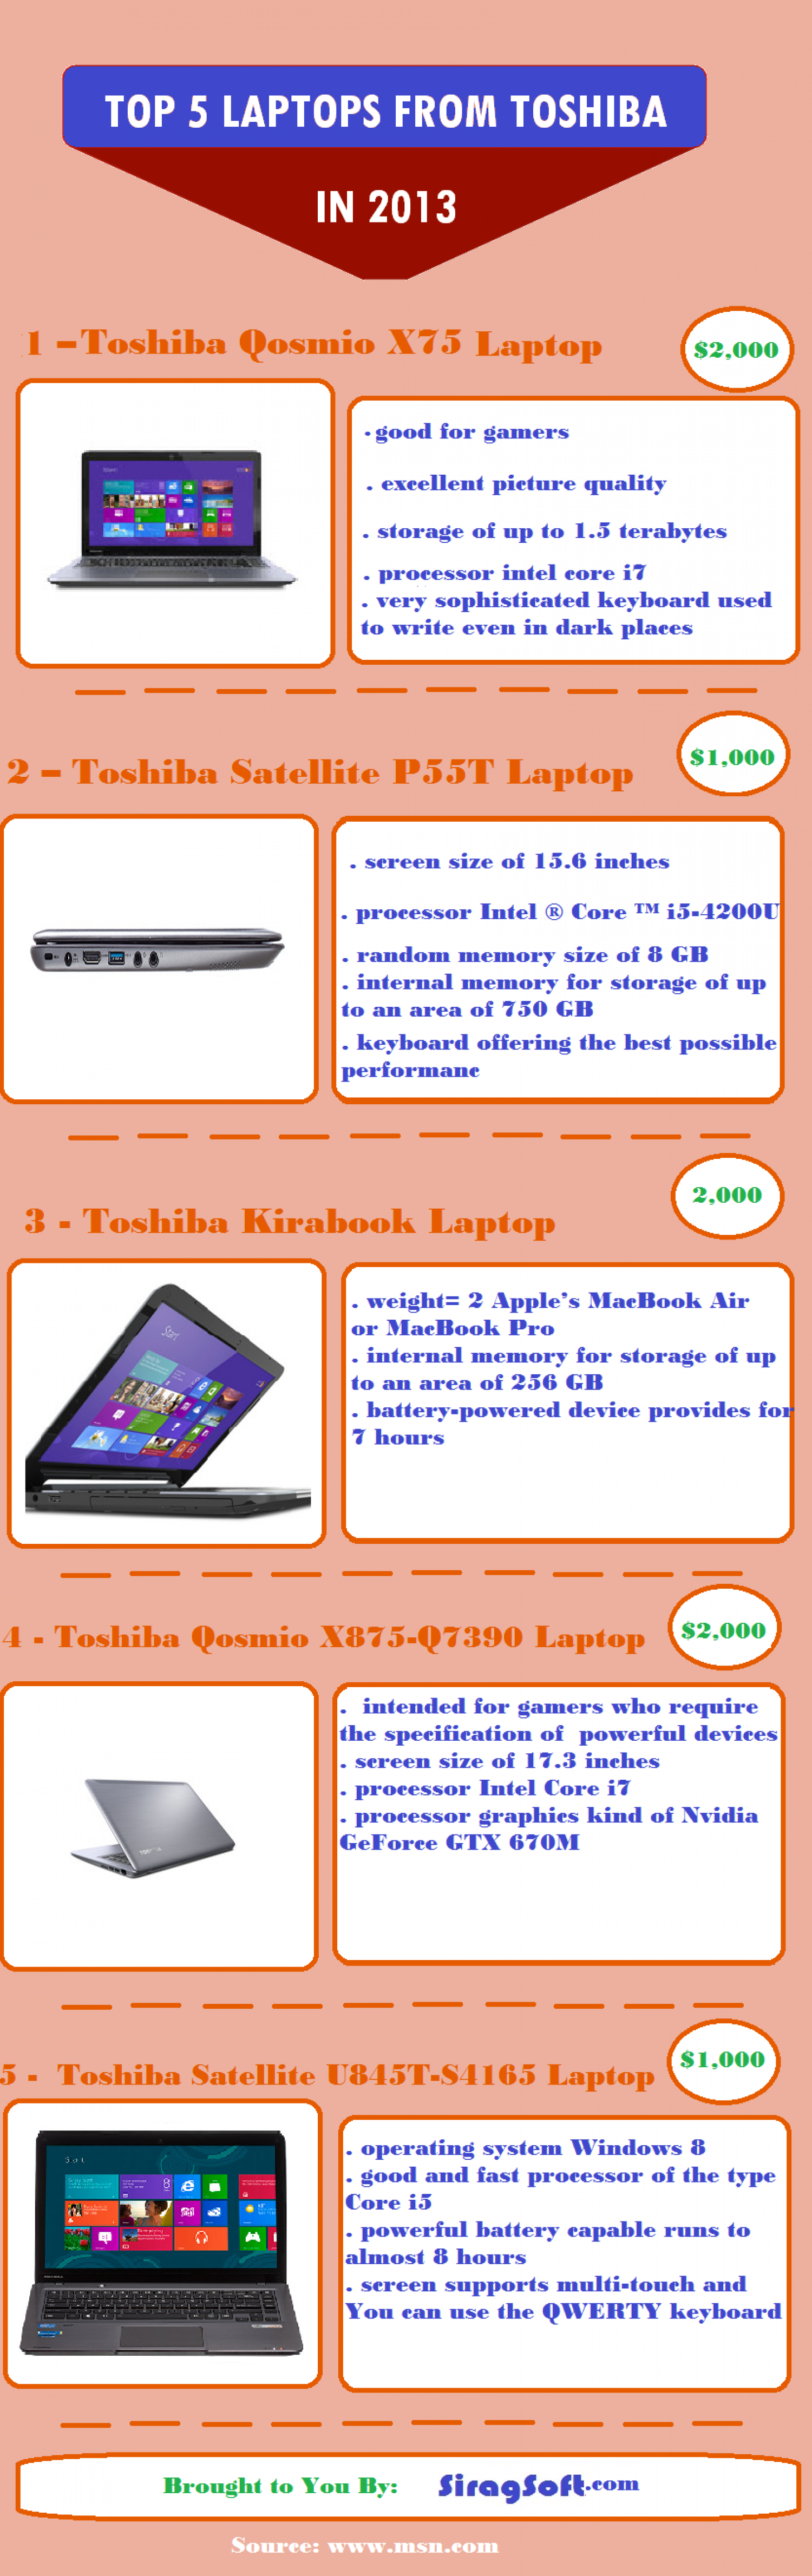 The Best 5 Toshiba Laptop 2013 Infographic